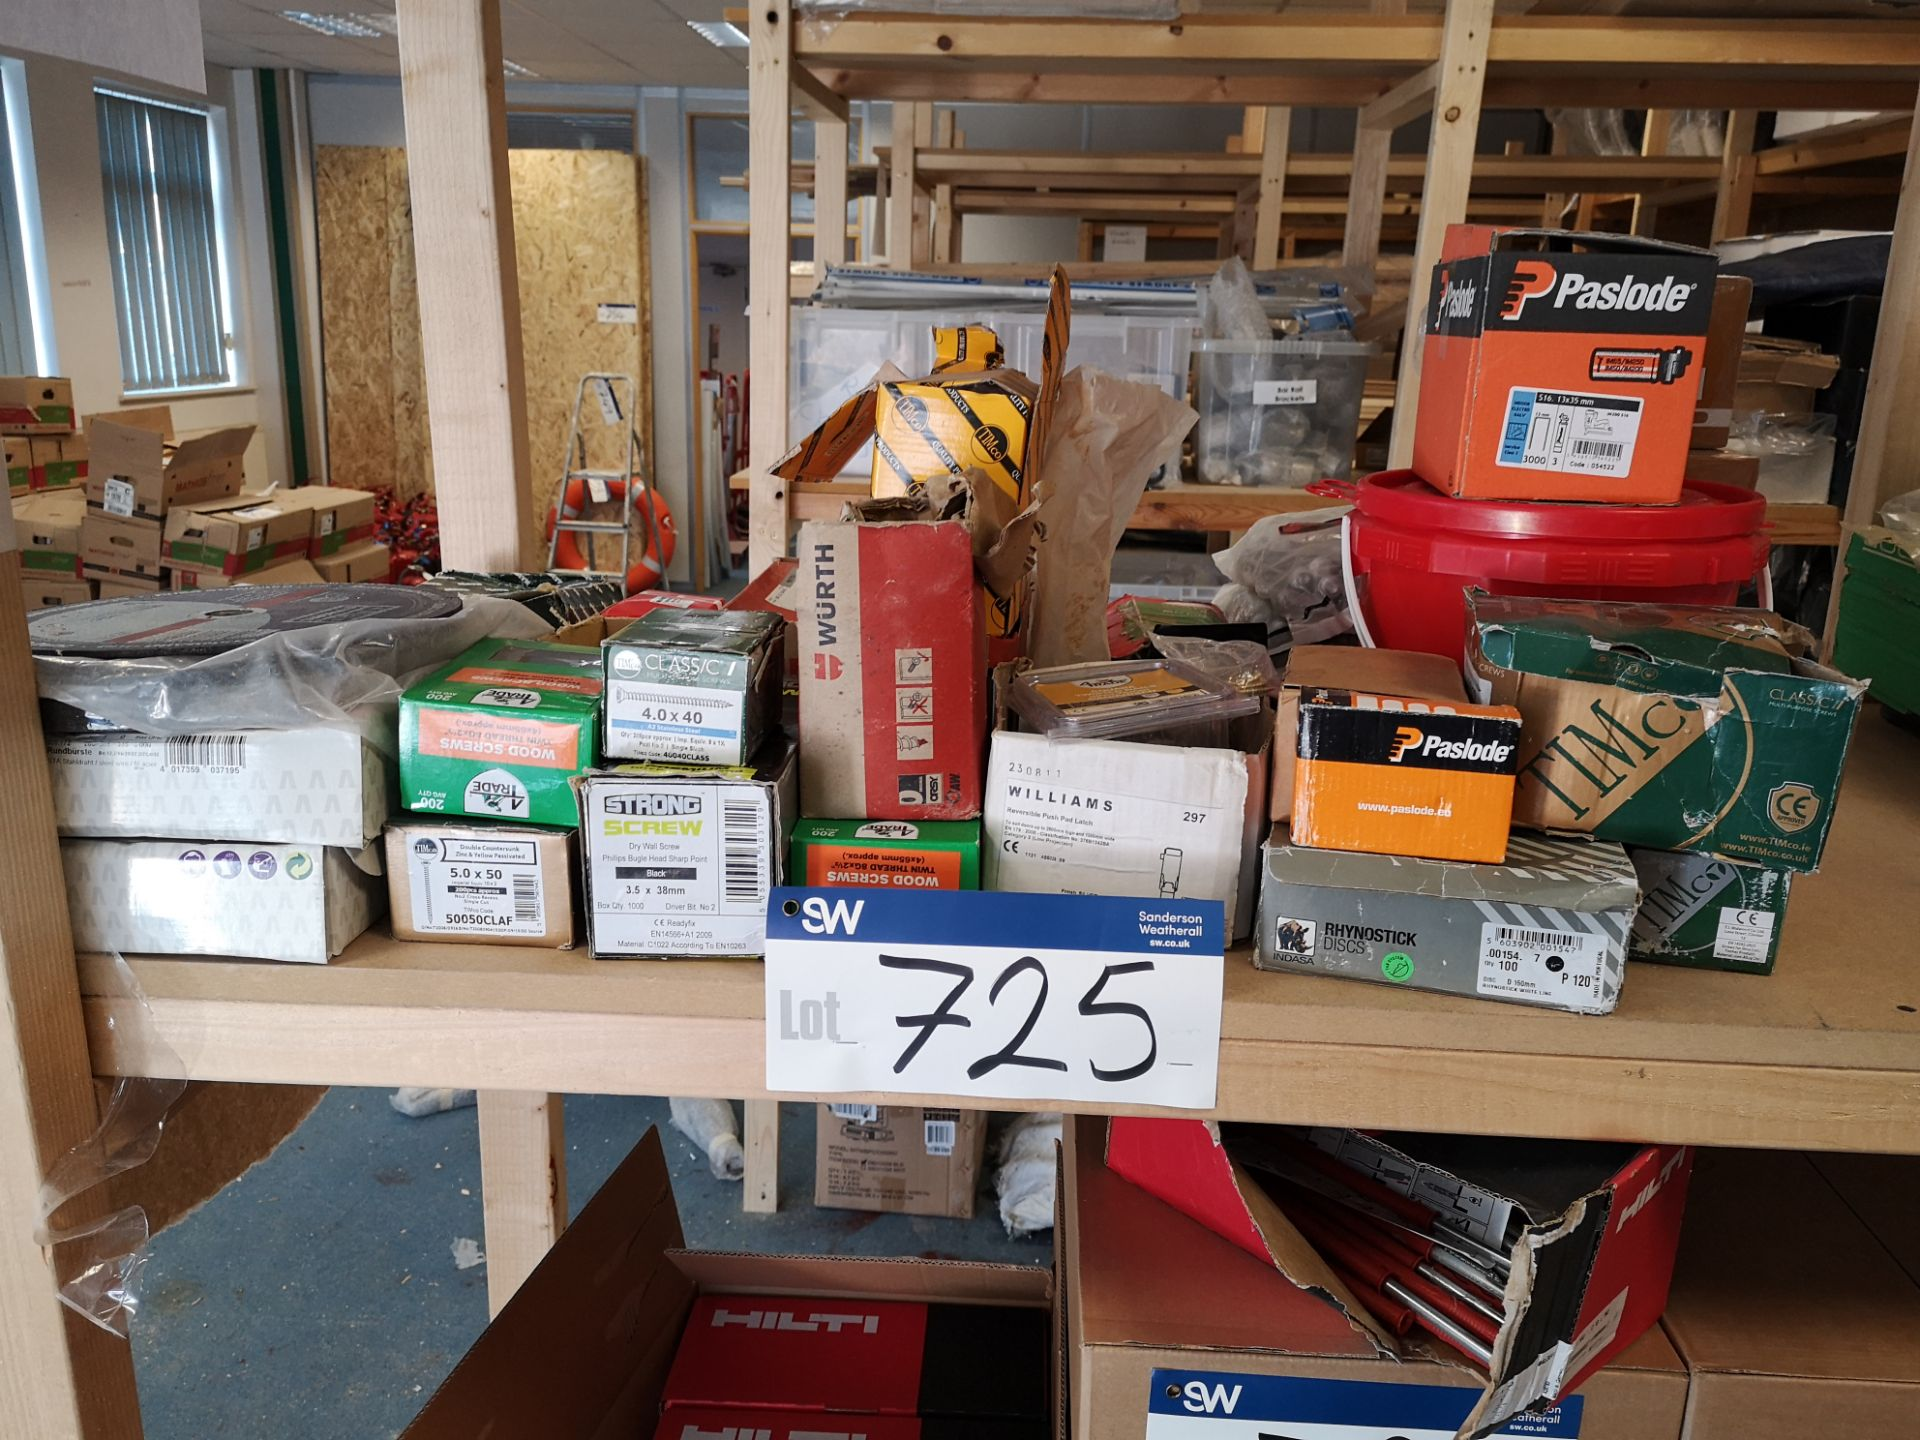 Lot 725 - Quantity of Screws & Fixings, as set out on one sh